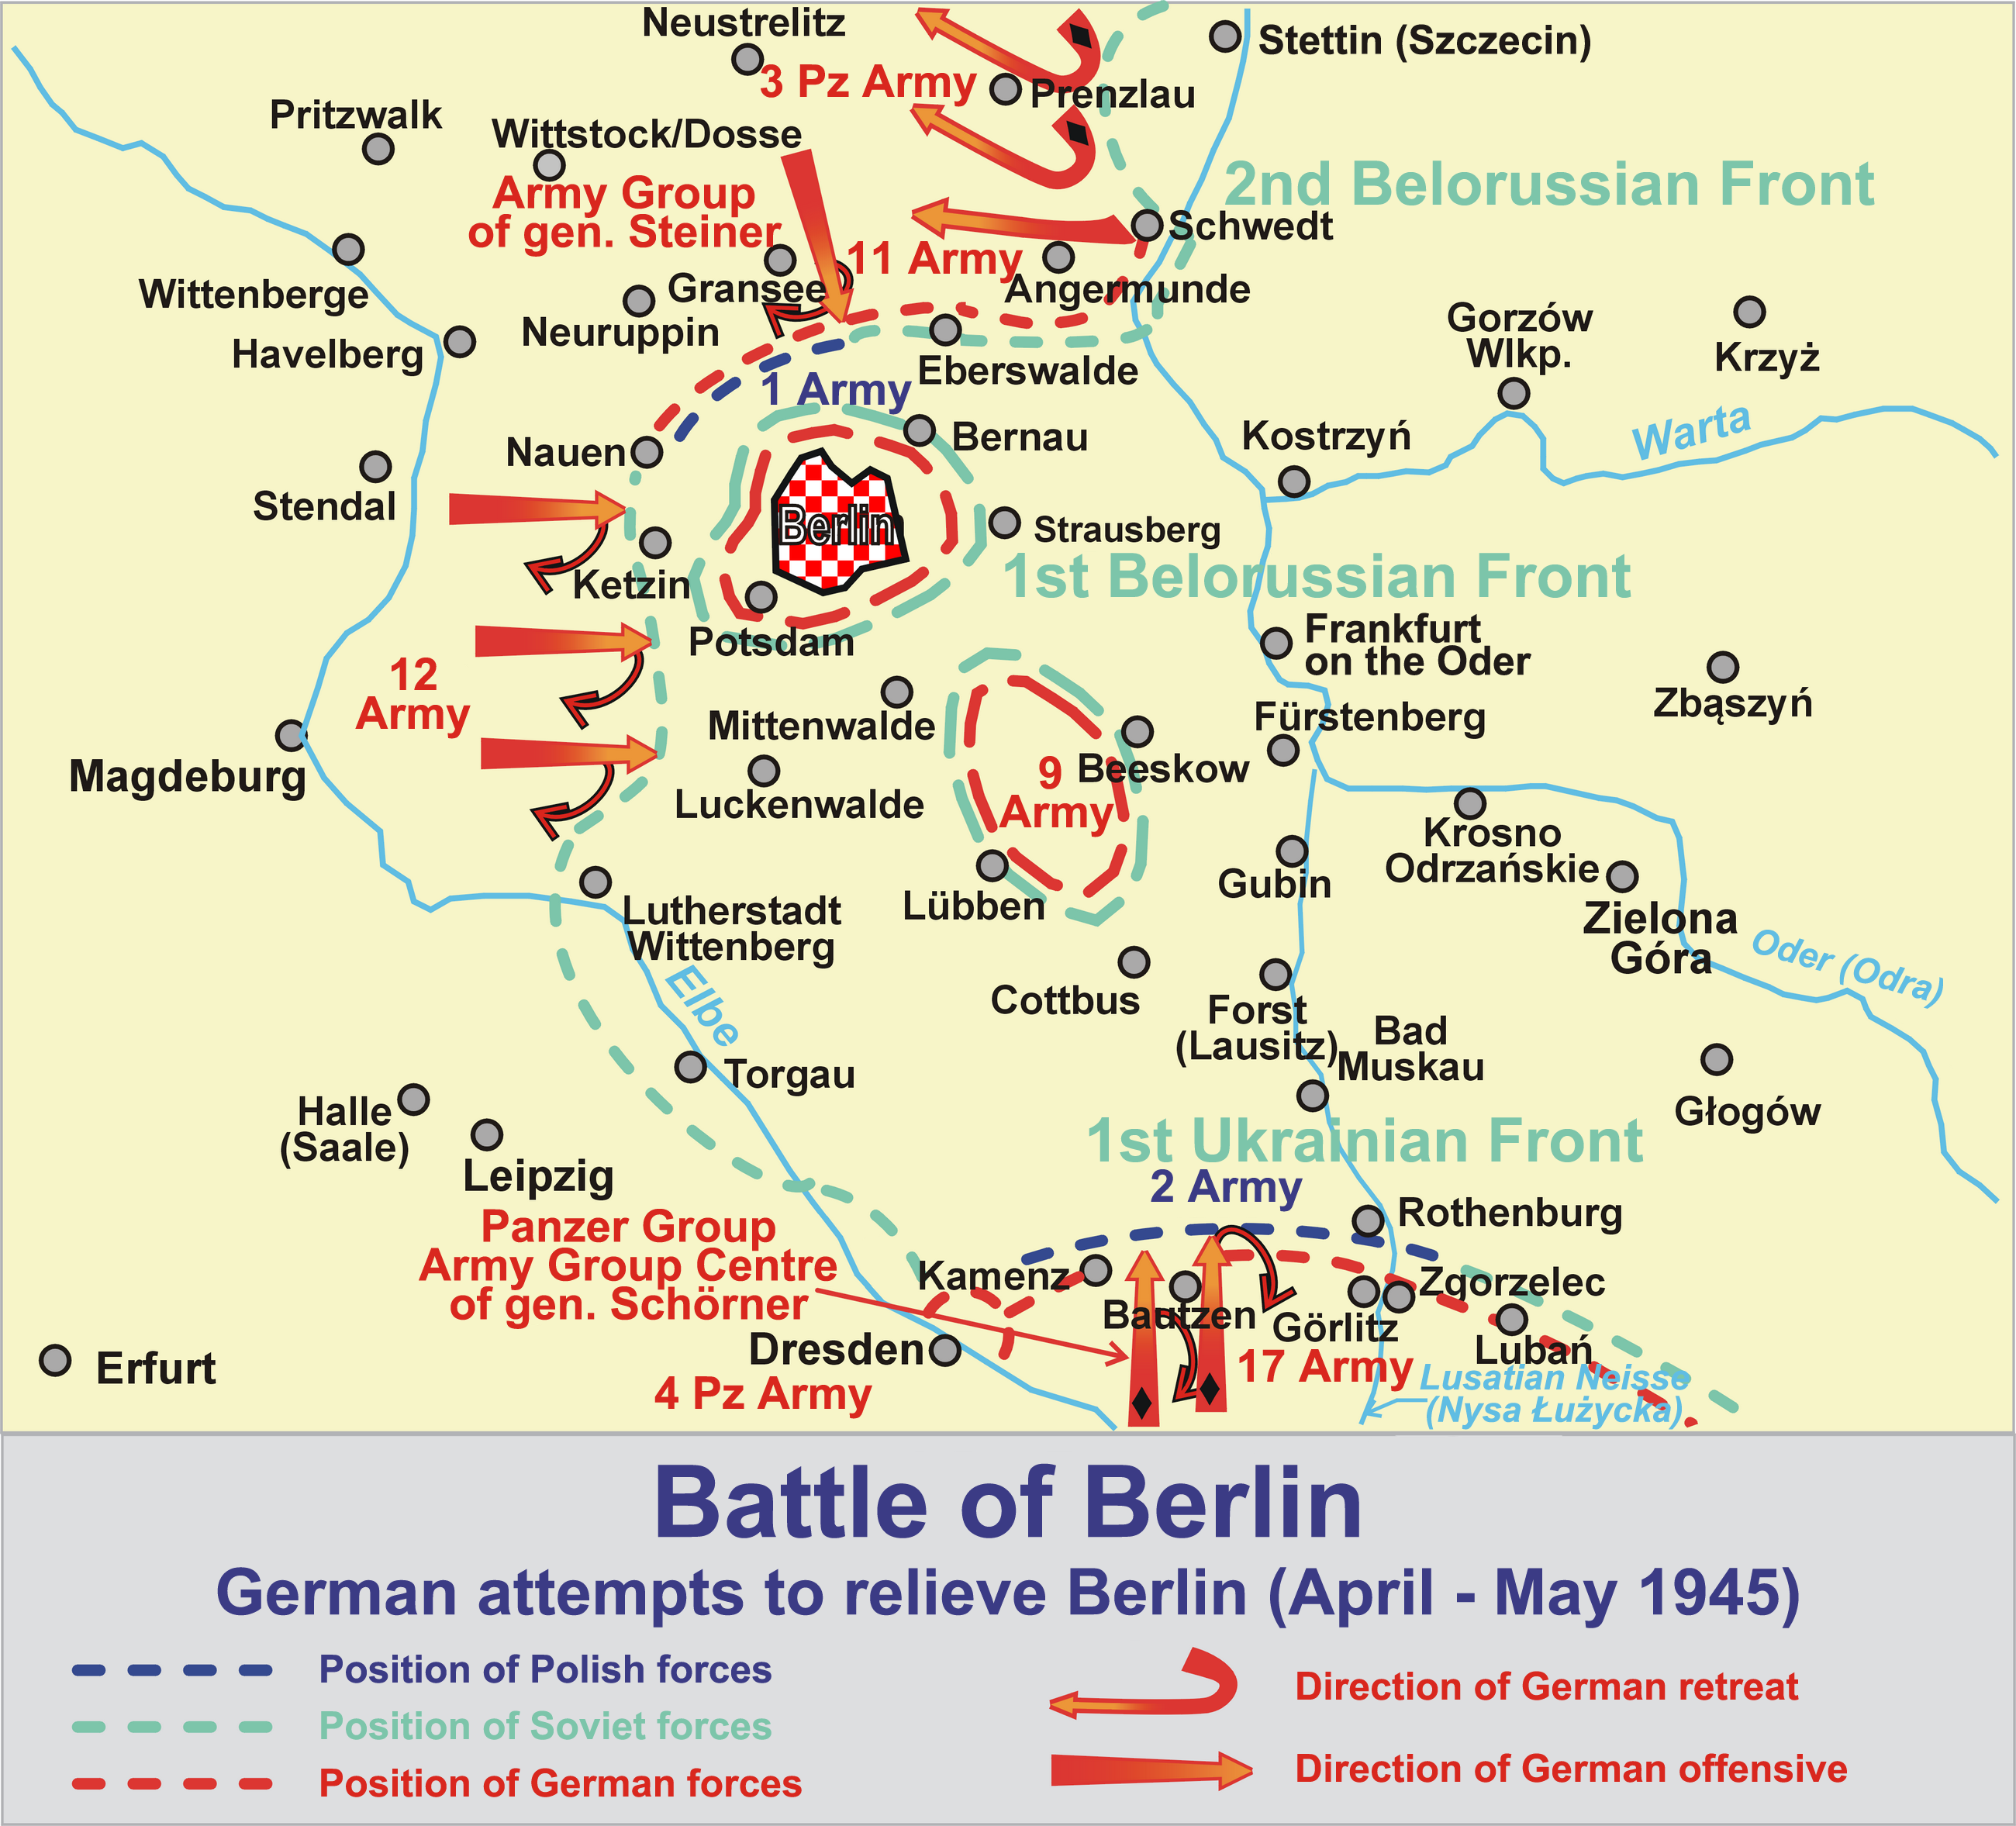 Overview of the battle of Berlin